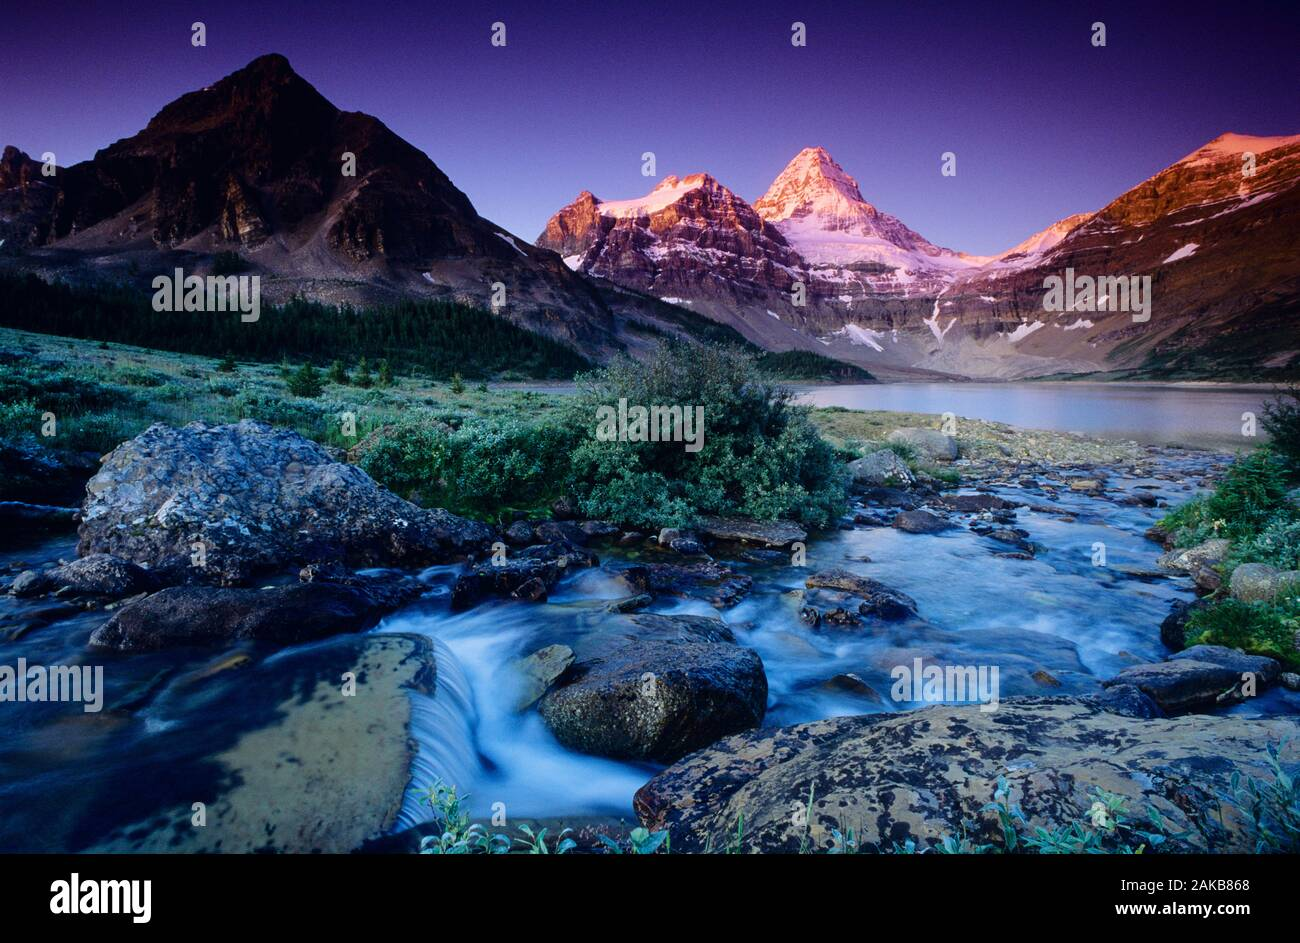 Landscape with lake and mountains, Mt. Assiniboine Provincial Park, British Columbia, Canada Stock Photo